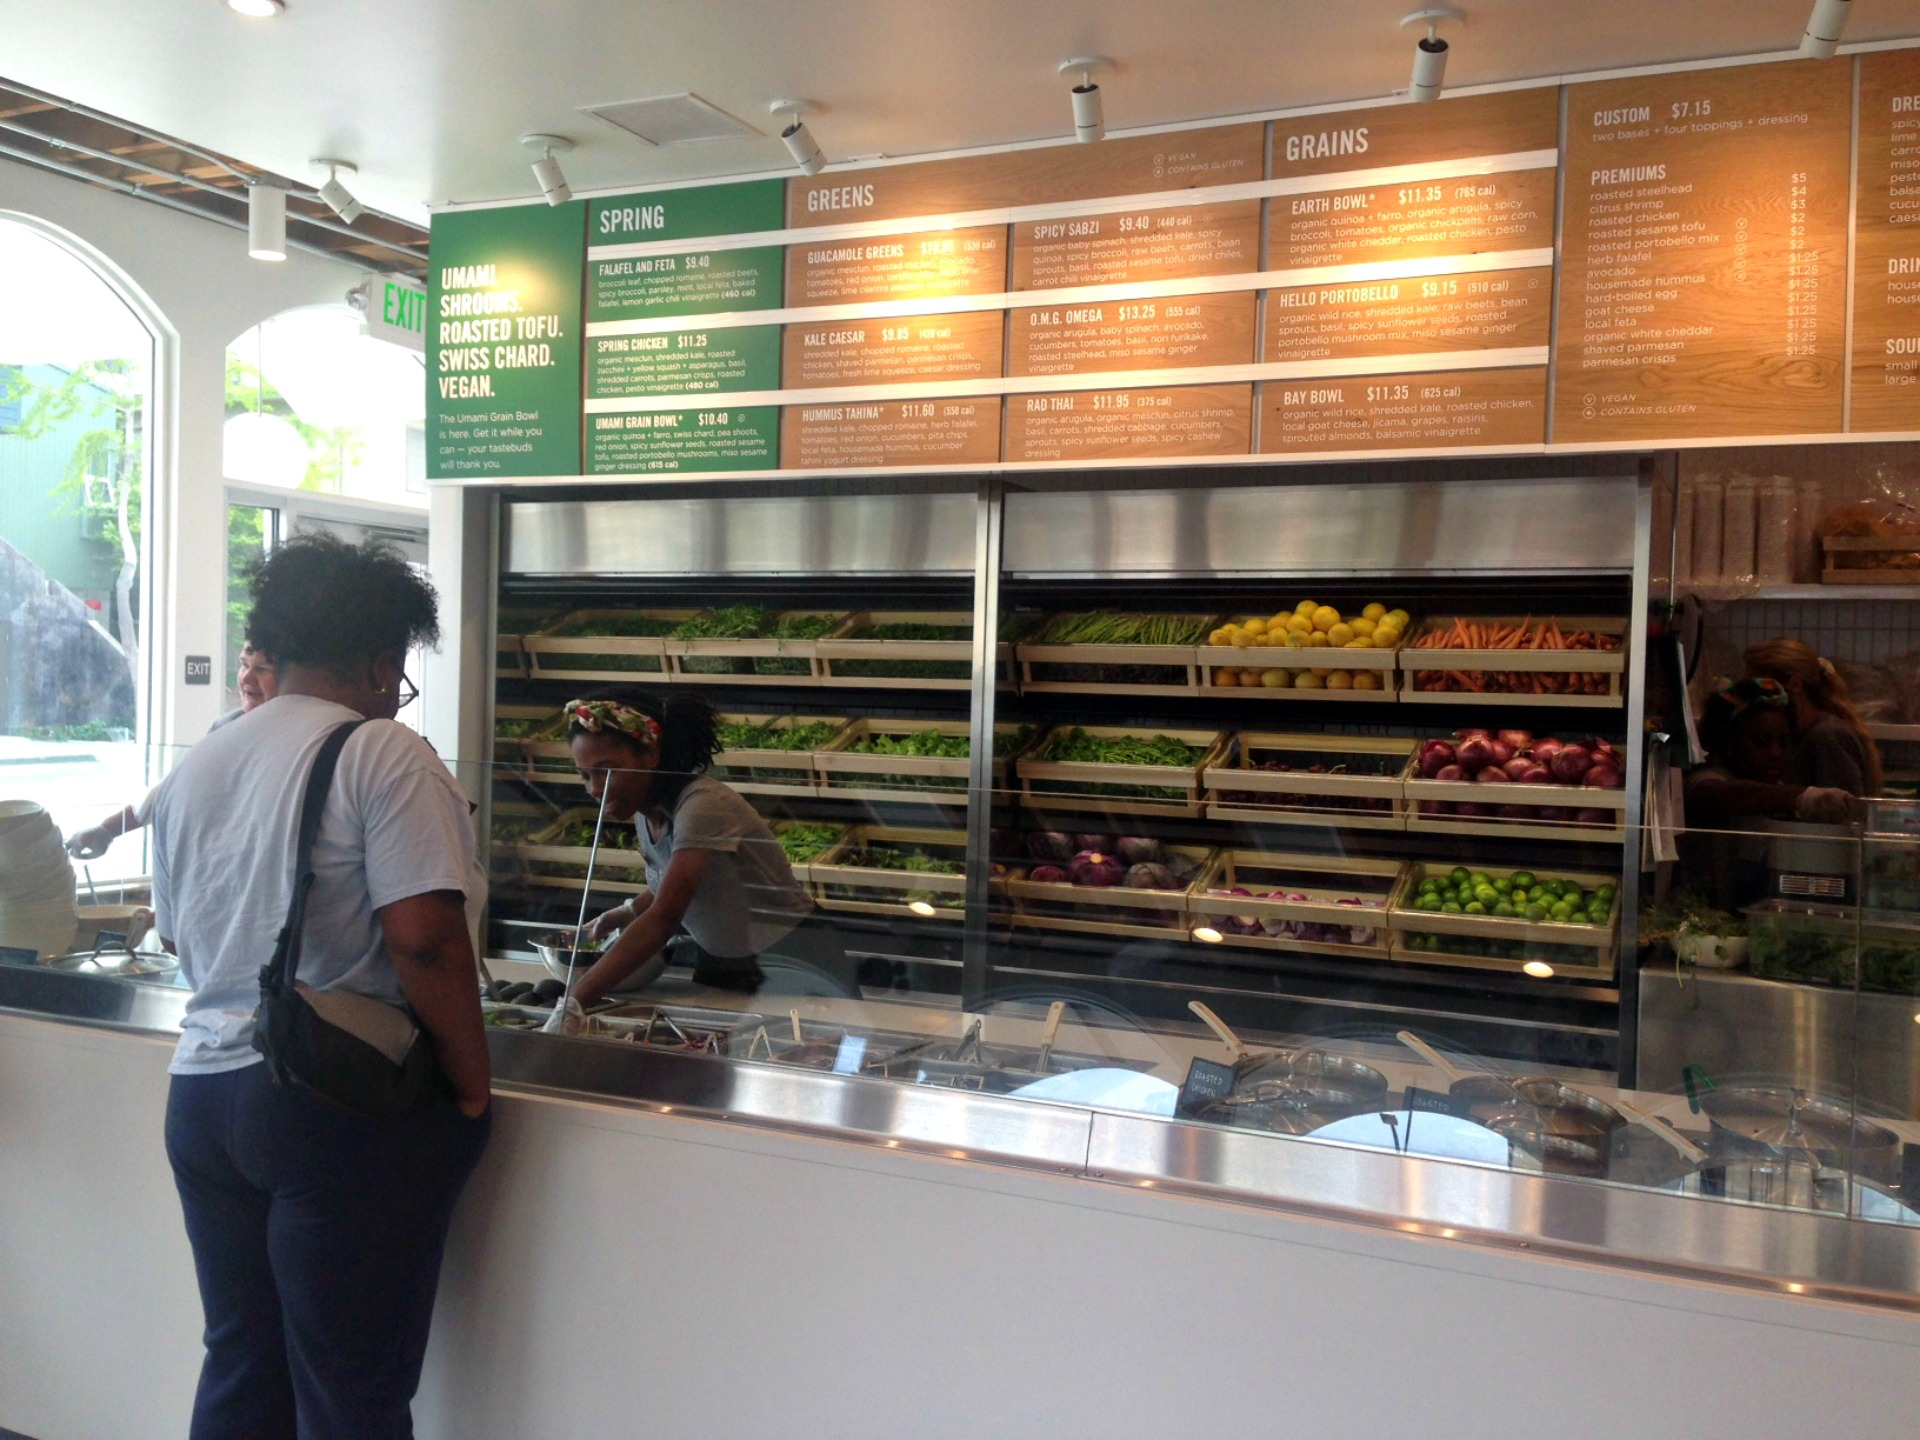 The salad bar at sweetgreen.